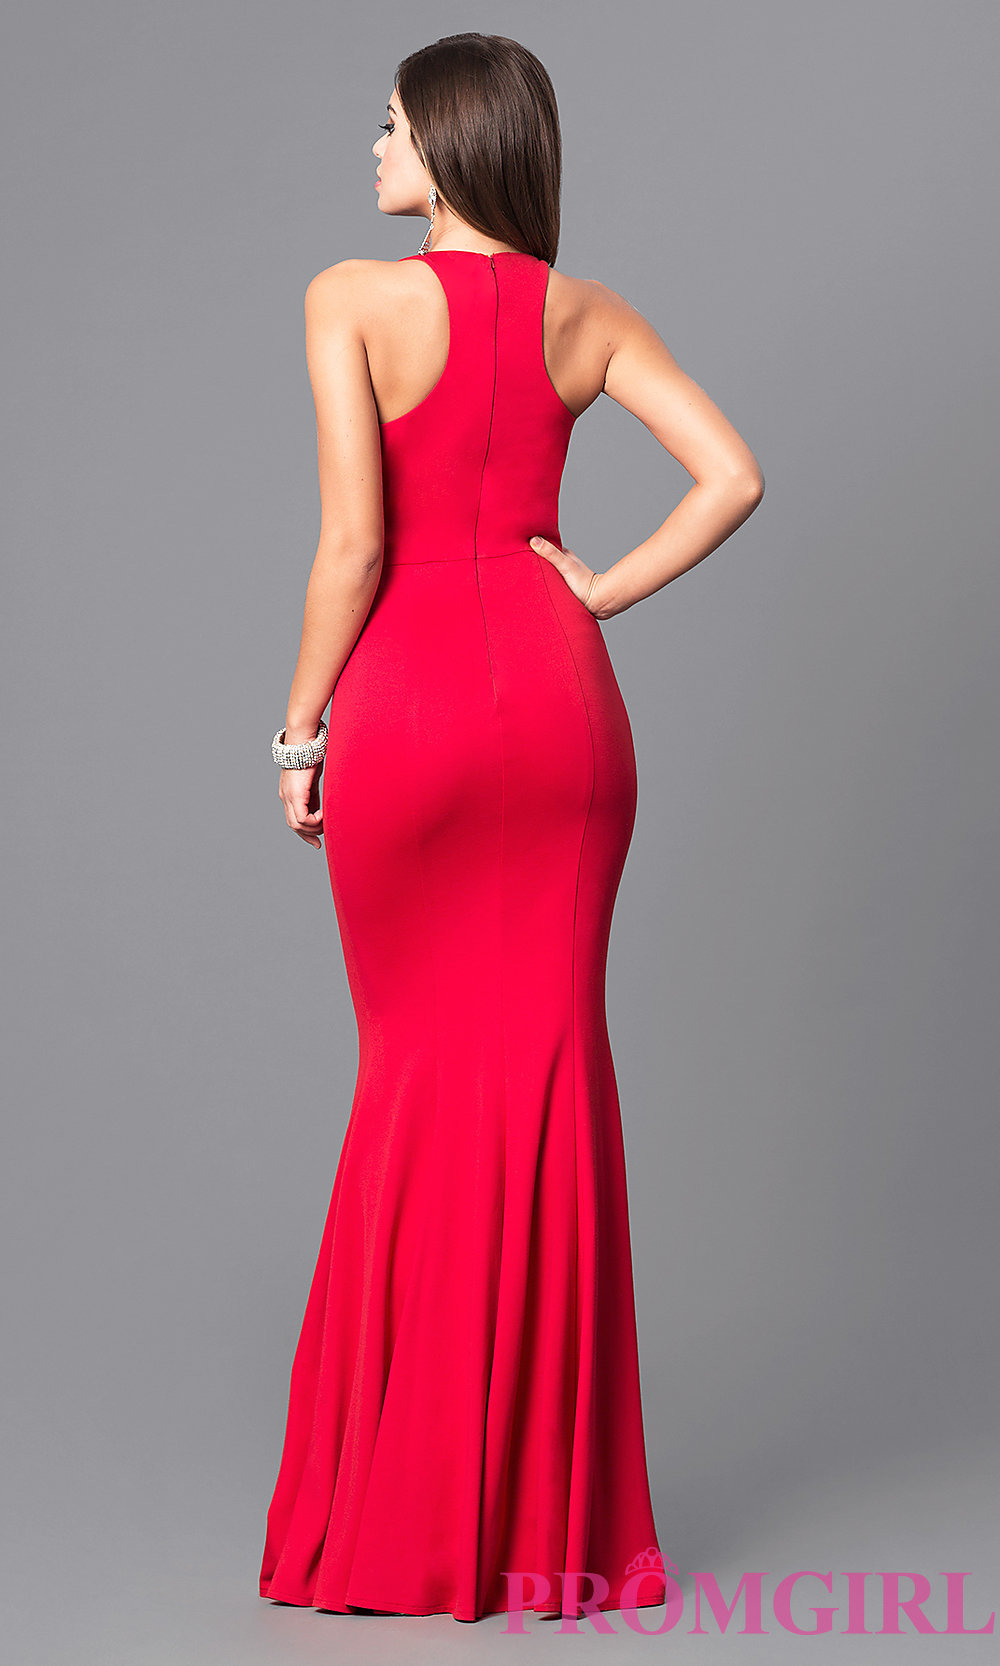 Racerback Jersey Prom Dress With High Neck Promgirl